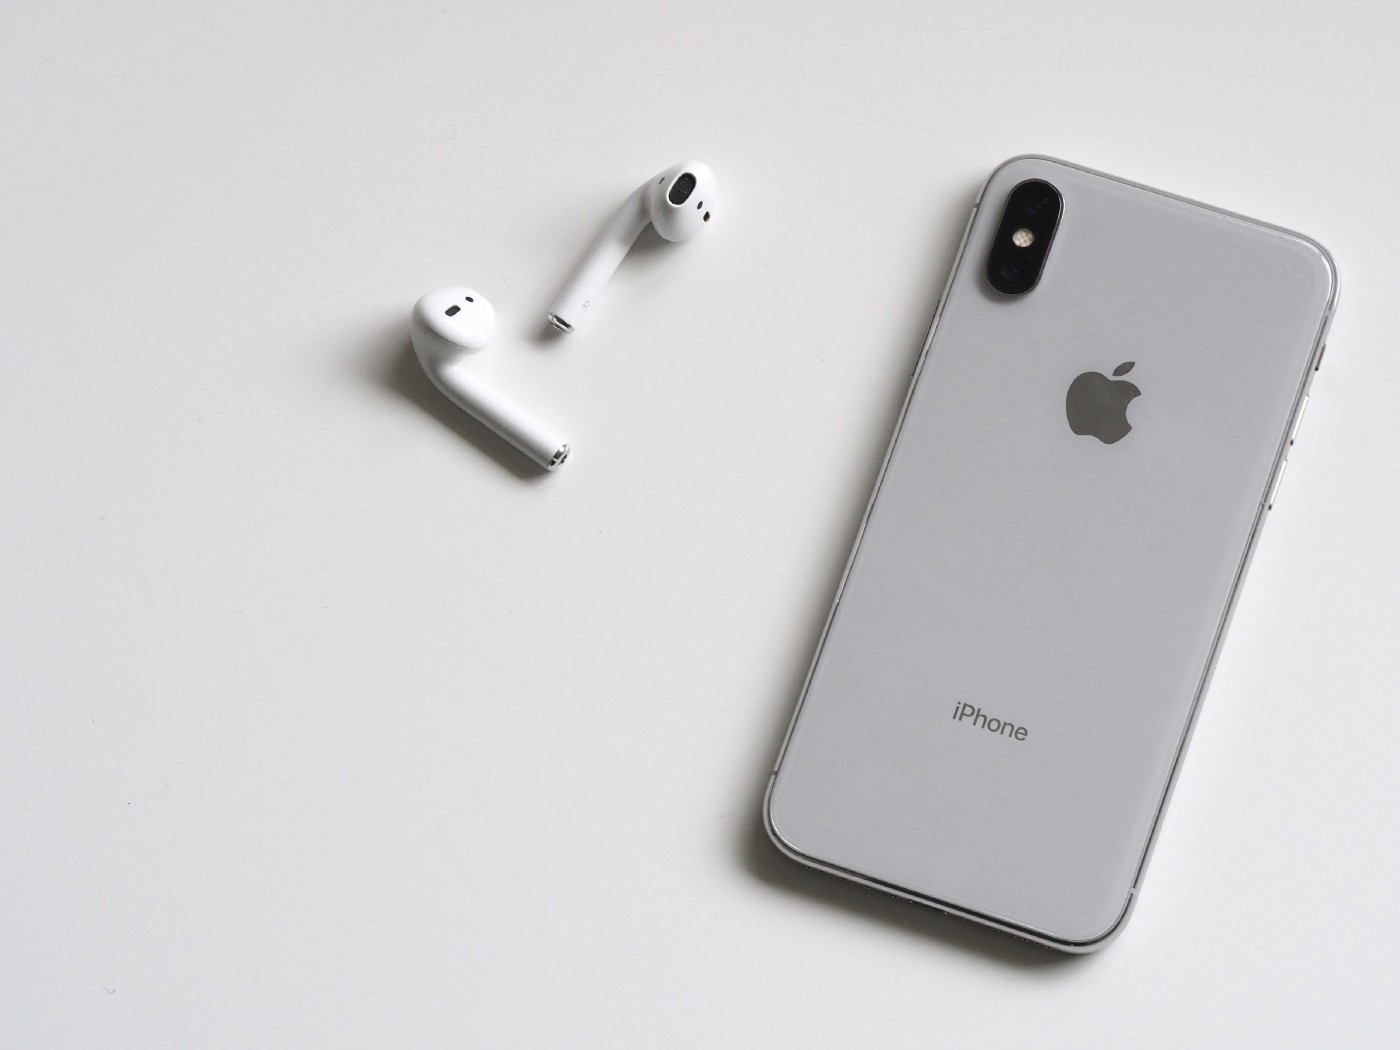 A picture of a phone and airpods disconnected on a table.